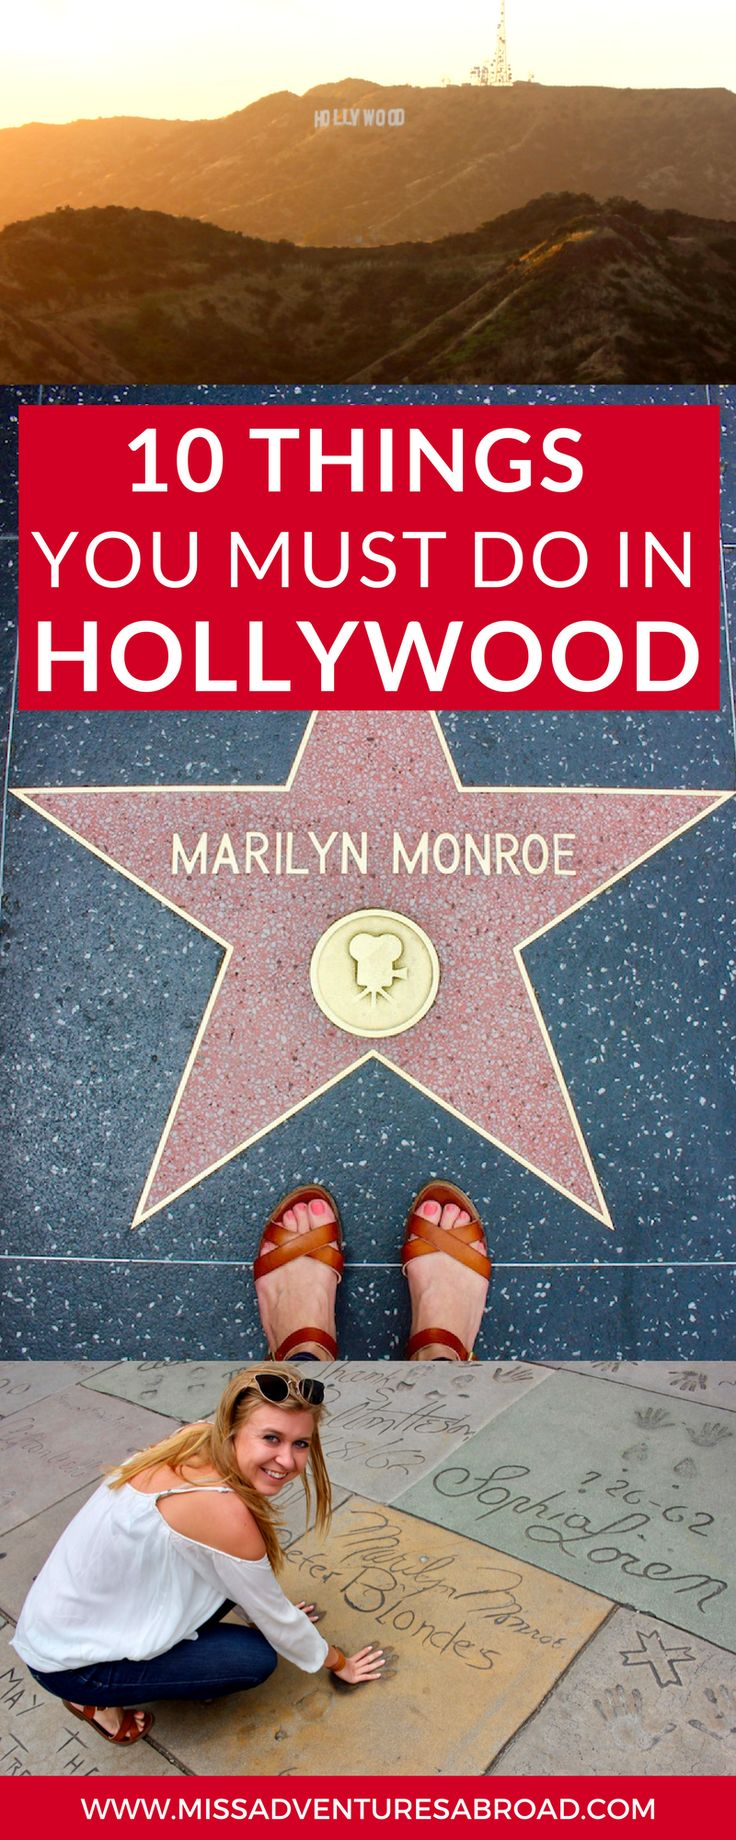 10 Touristy Things To Do In Hollywood, California · Discover the top 10 things to do In Hollywood, California from the Hollywood Sign to the Walk of Fame and more! You won't want to miss these star-studded attractions the next time you are in LA.